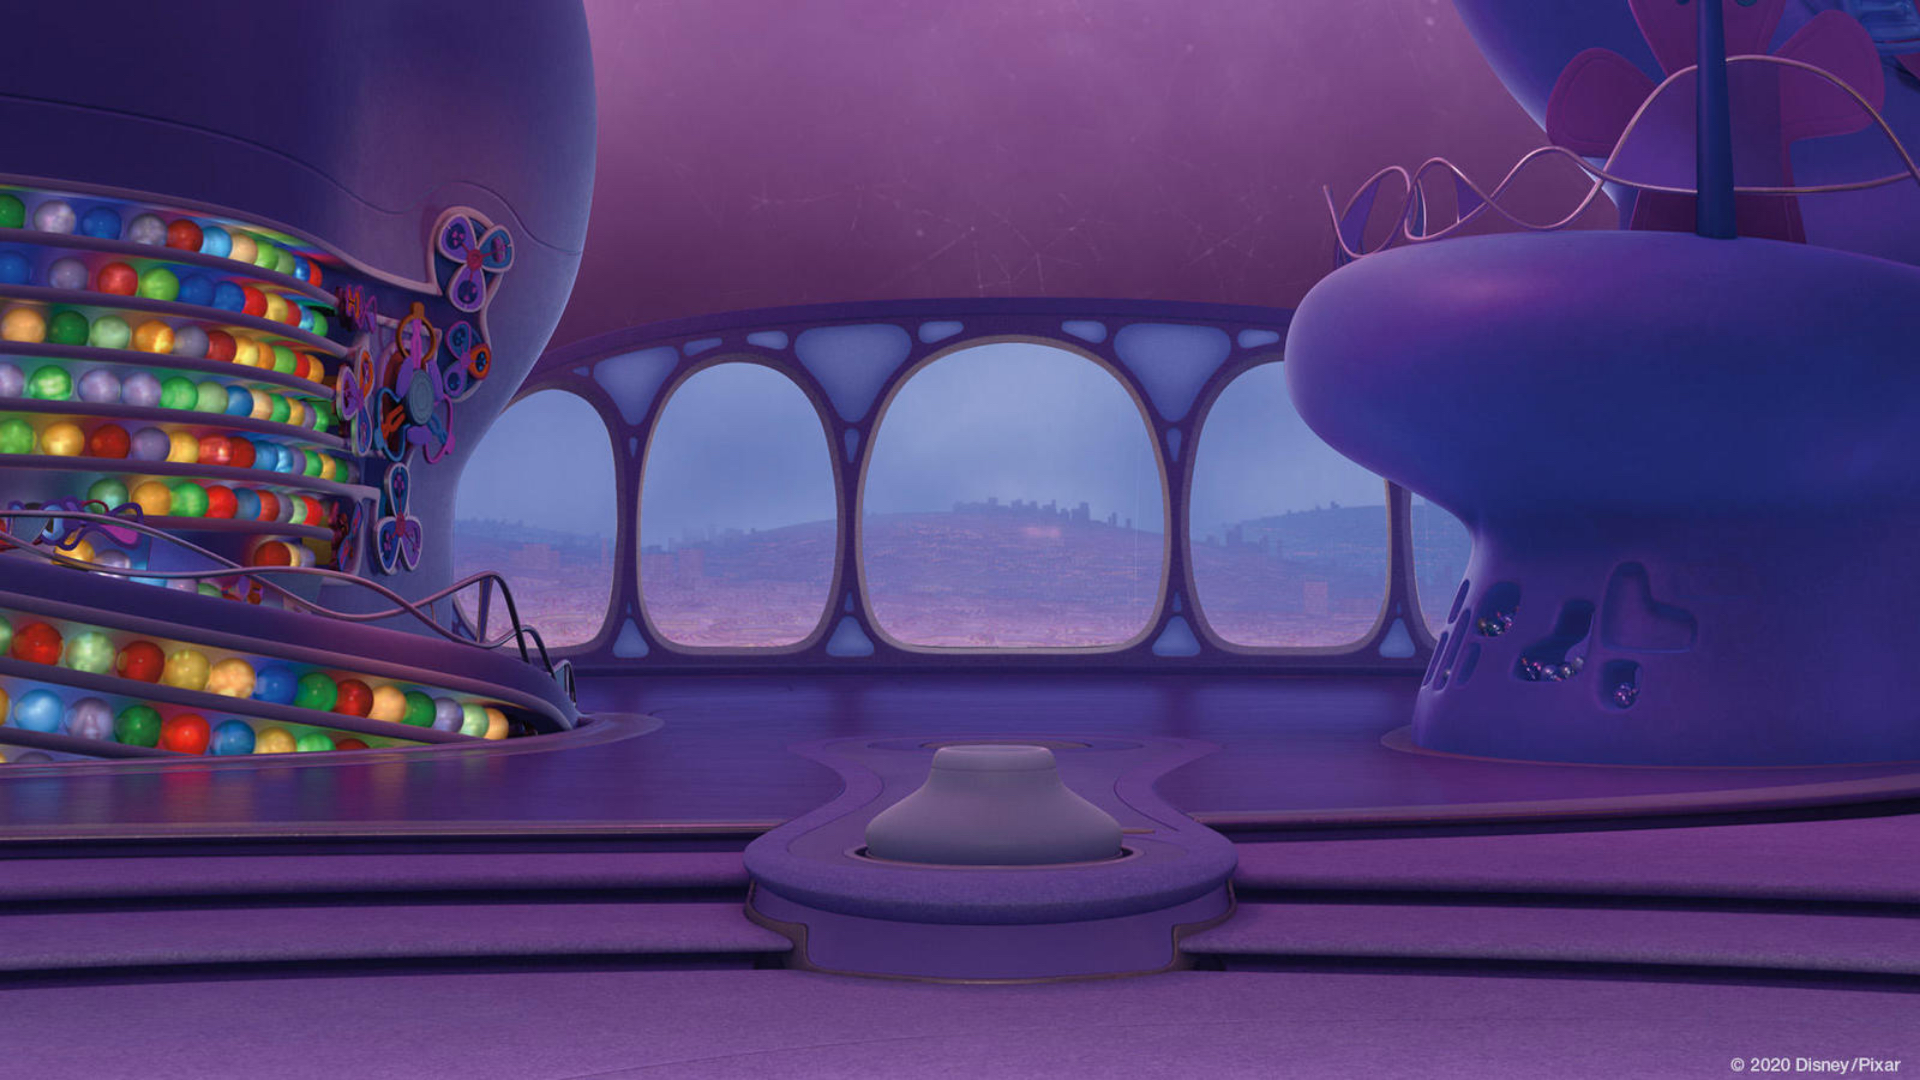 Disney - Inside Out Background for Teams or Zoom